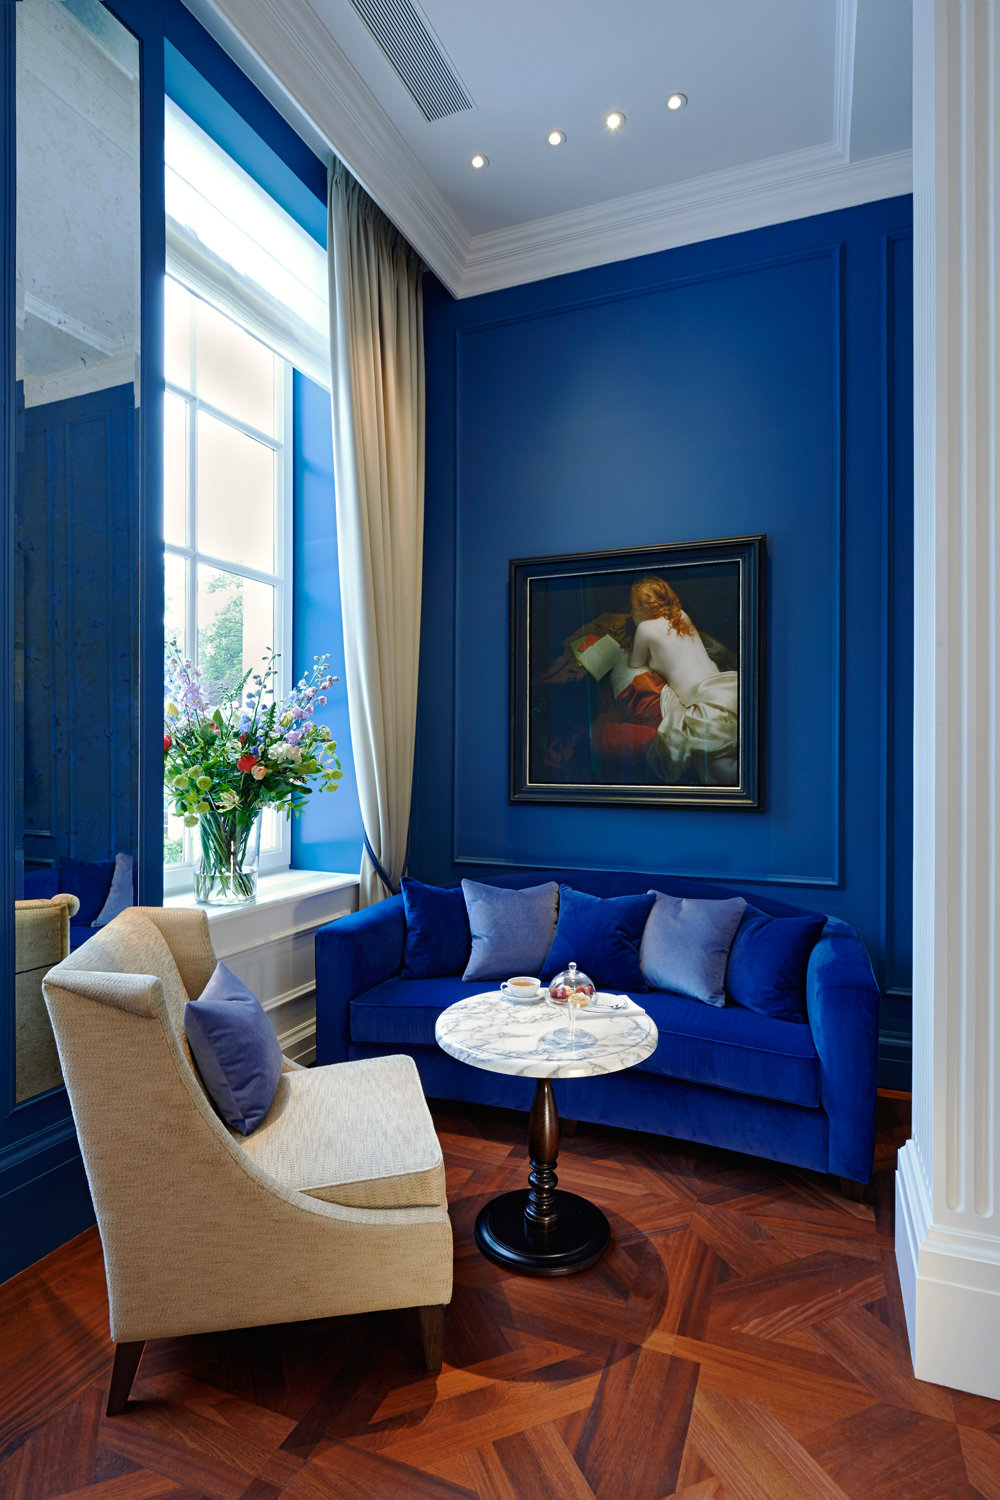 Blue Velvet Sofa Against Blue Wall via Vogue